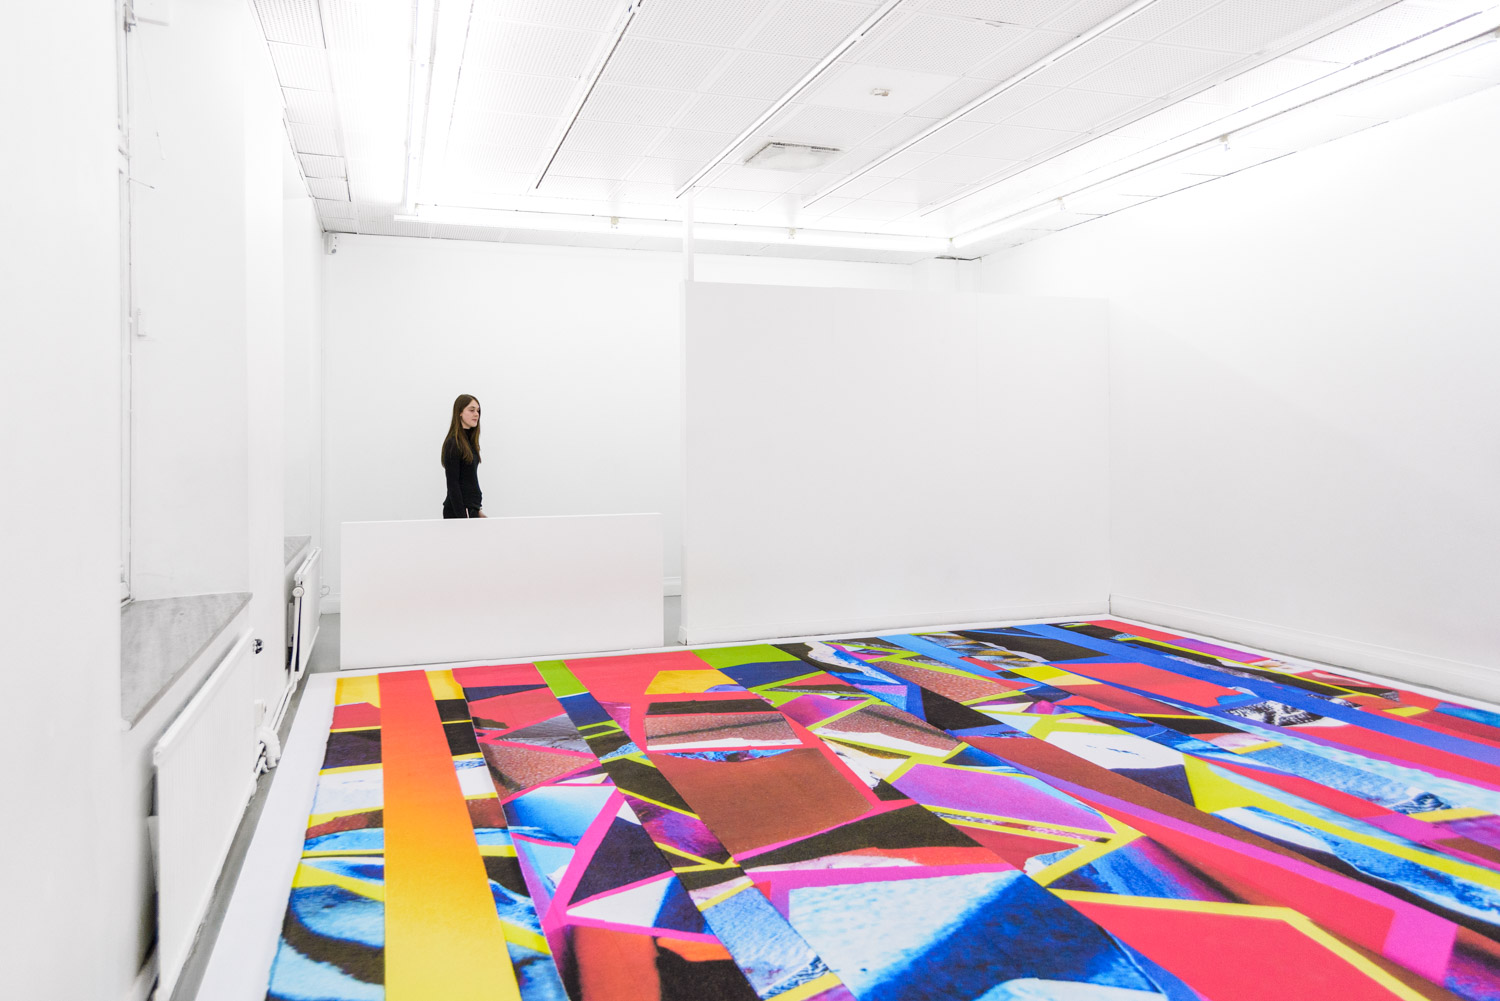 contemporary colorful carpet as an art installation by Stefano Conti in a white gallery, with a visitor.